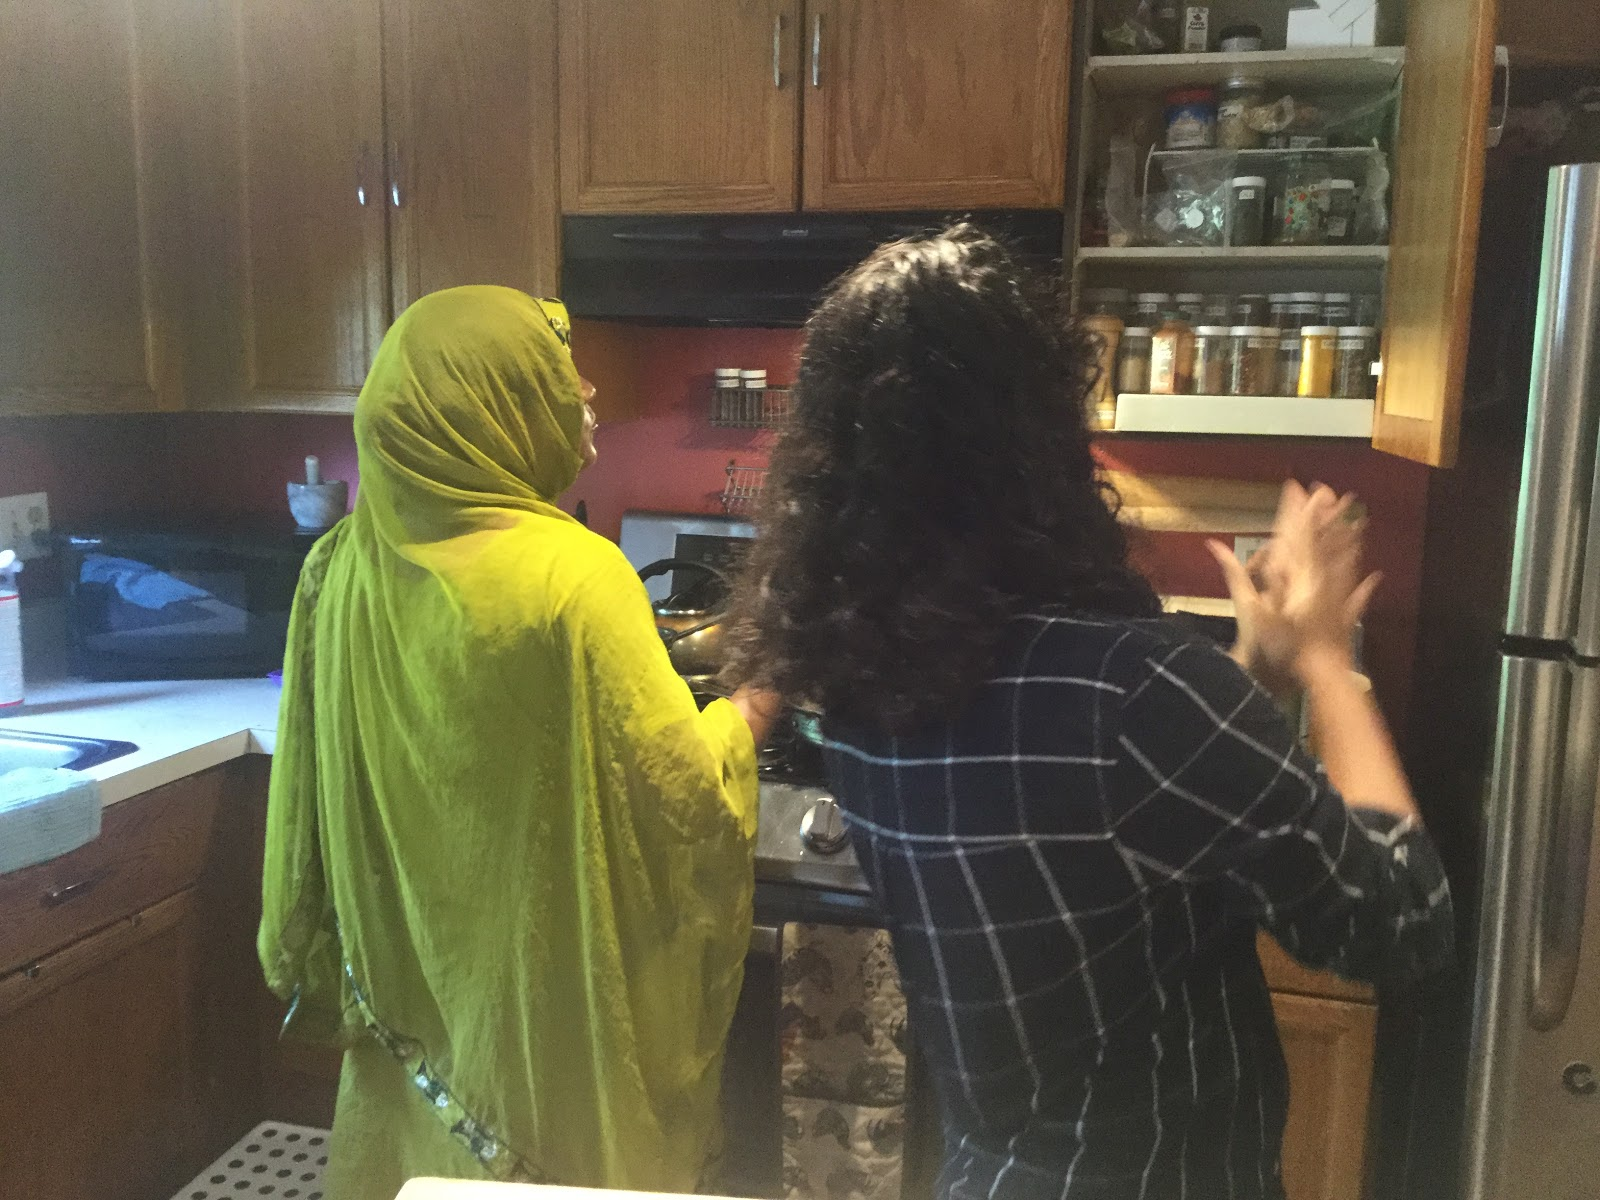 Aklima shows me how to properly cook her Bangladeshi squash